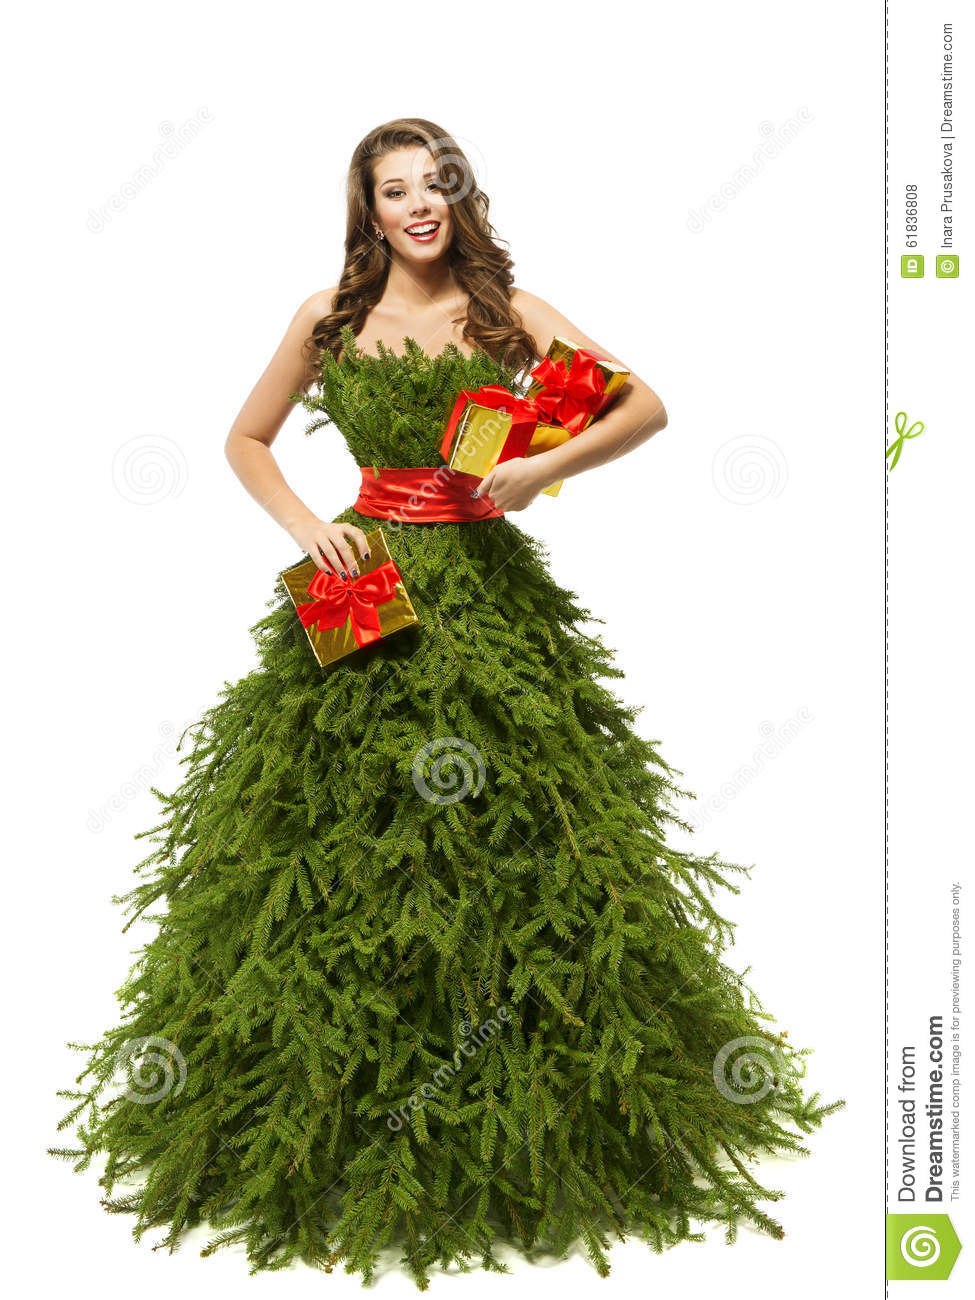 Woman christmas tree dress fashion model girl presents on